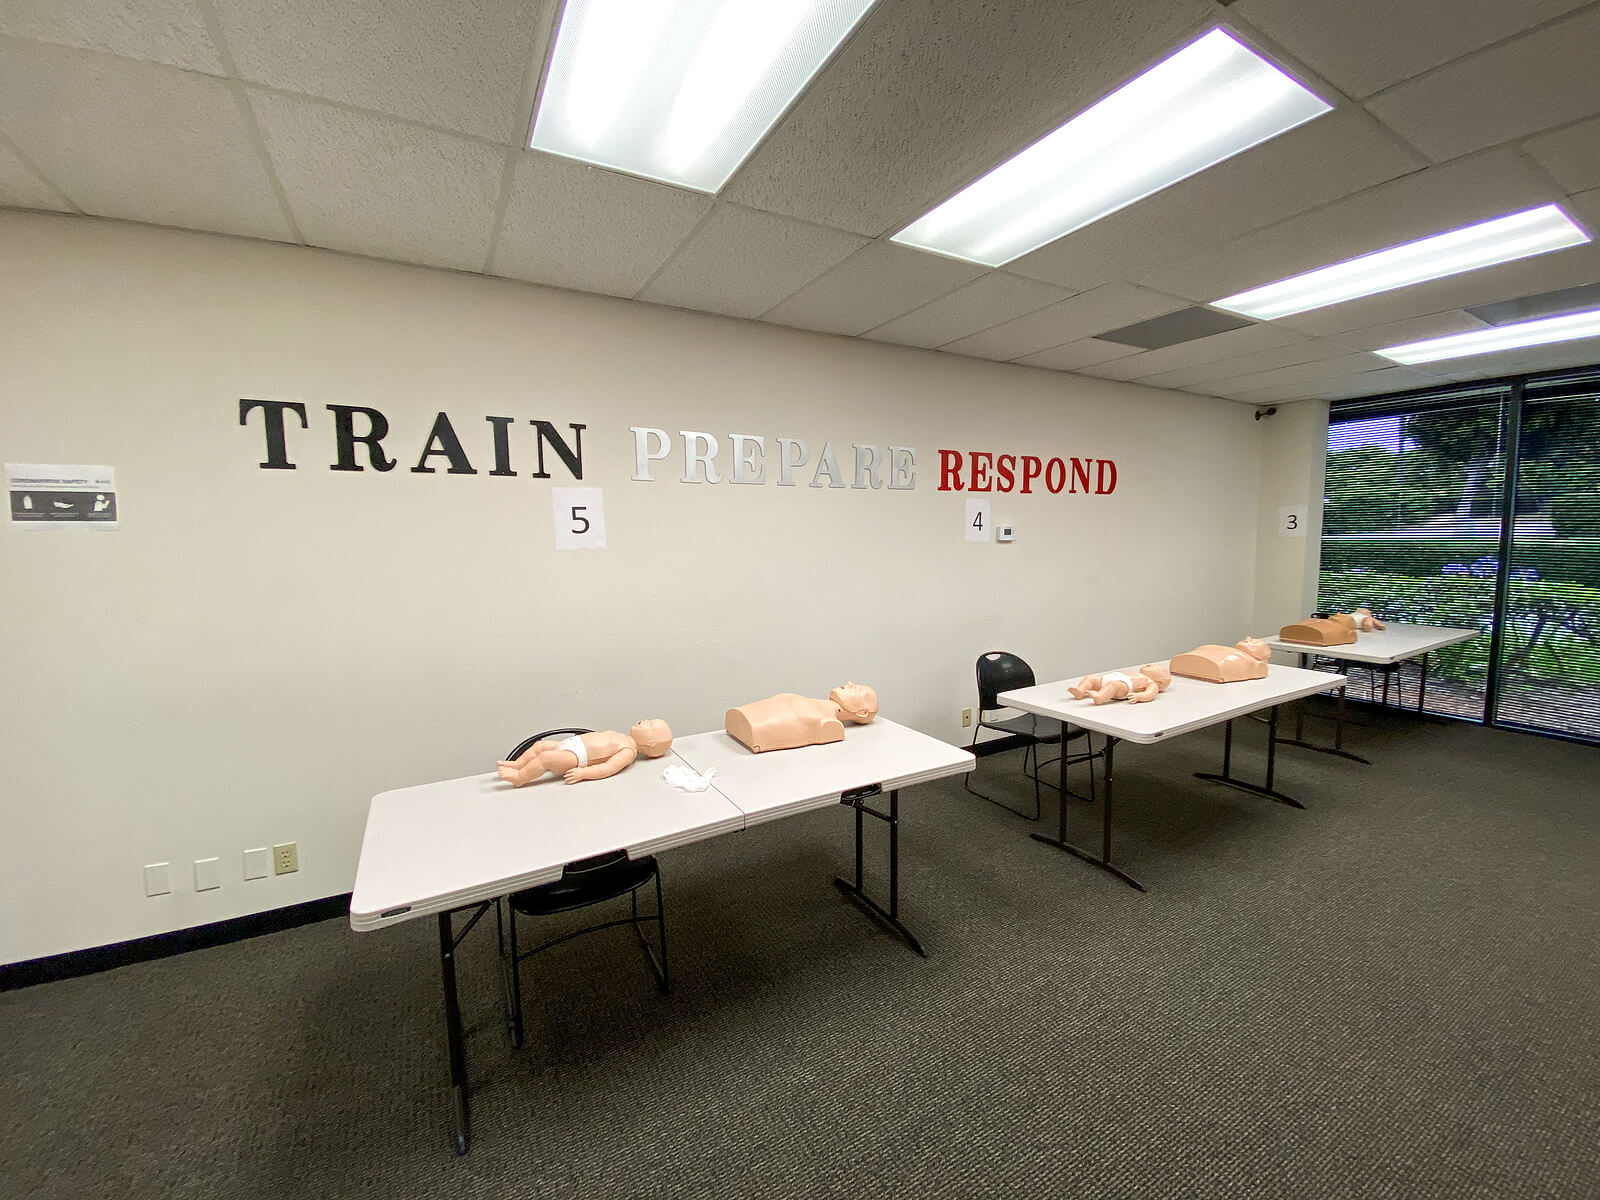 First Aid training room with two tables and CPR dummies.